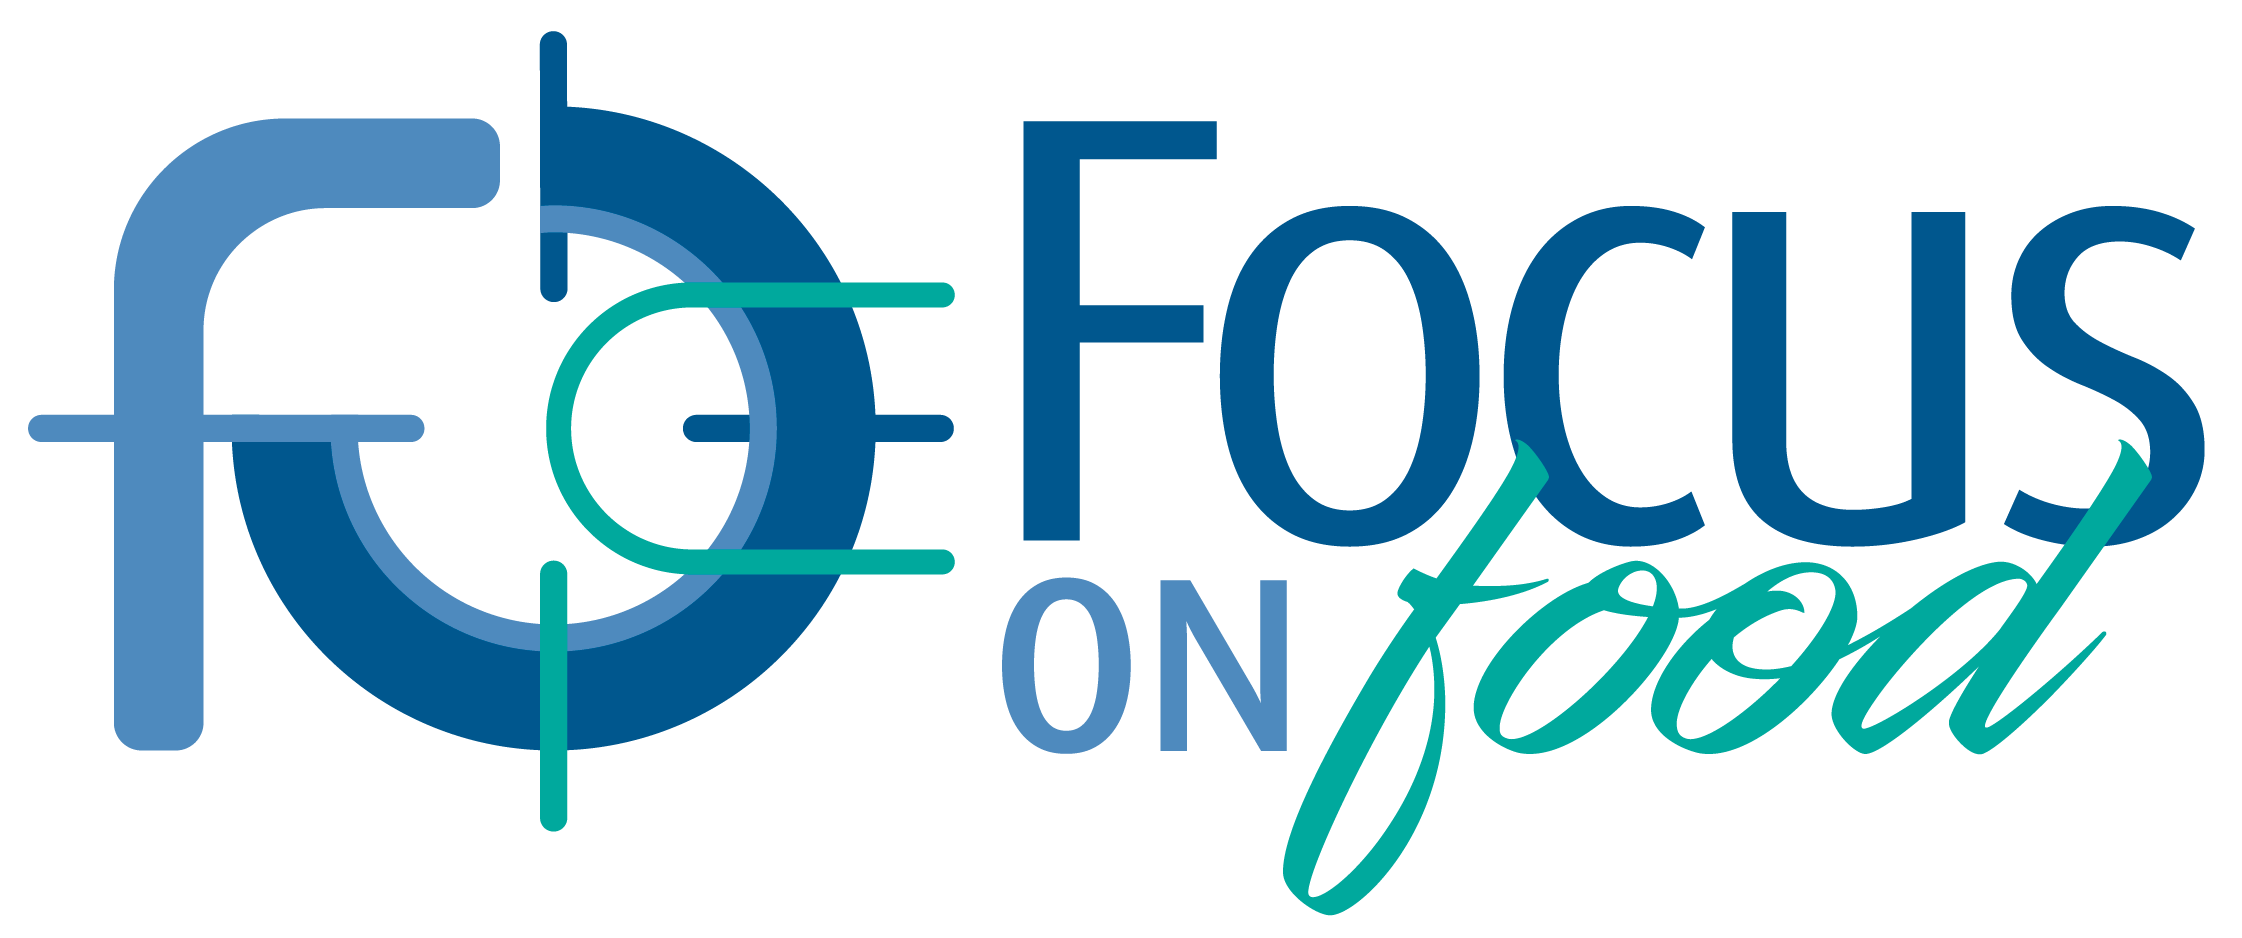 Focus on Food Consultancy Support Program